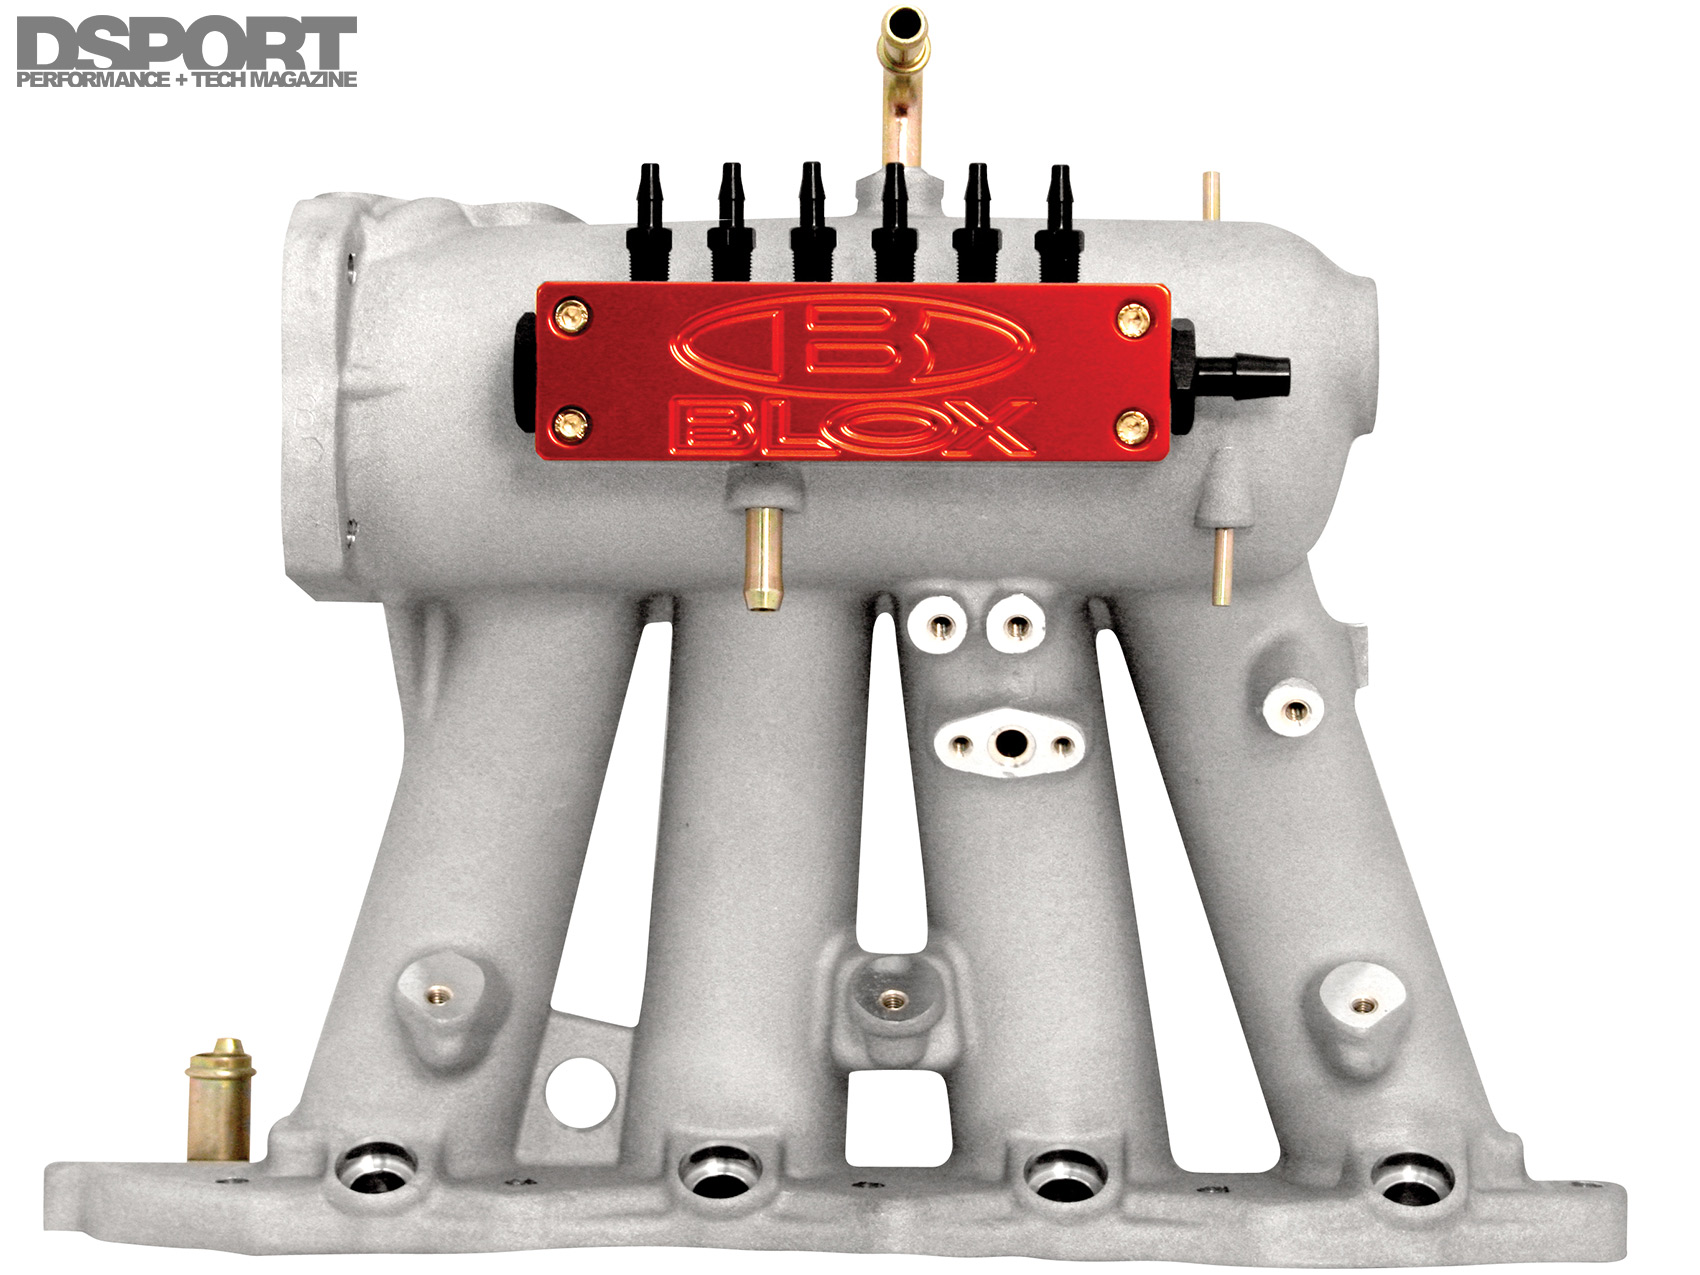 Intake Manifold 101: Ensuring the Cylinders are Working